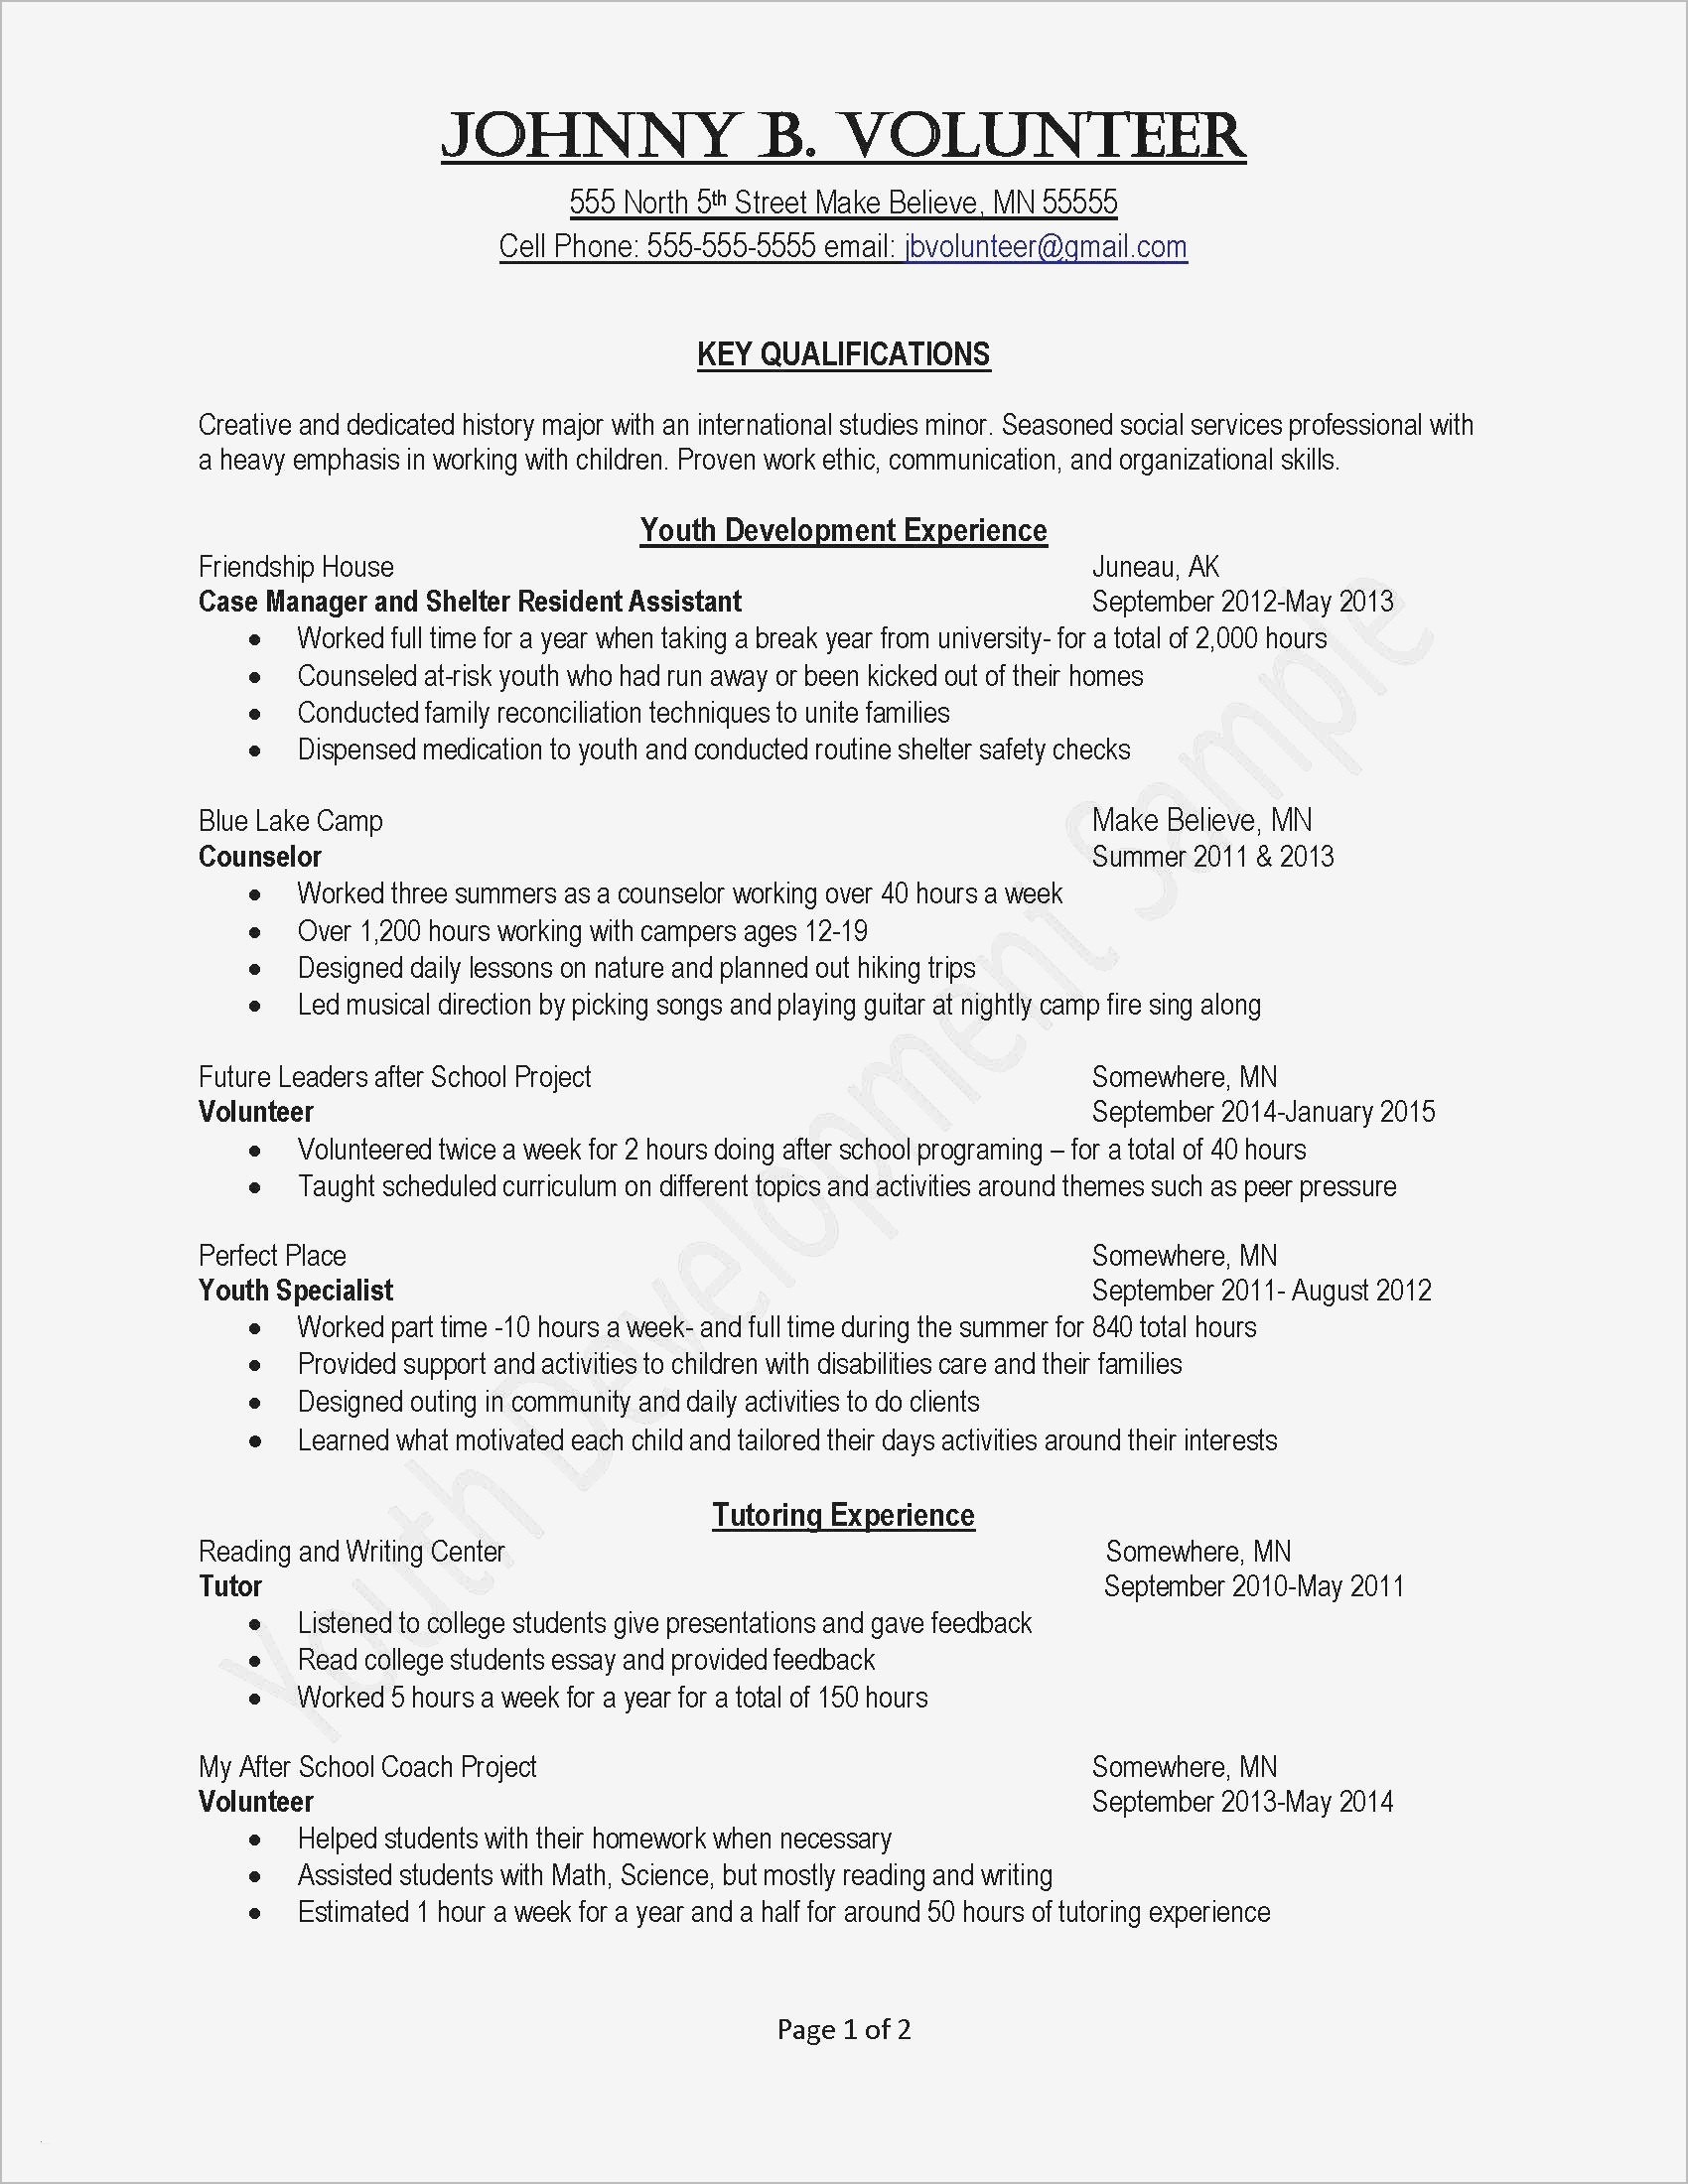 Maintenance Cover Letter Template - General Maintenance Resume New Job Fer Letter Template Us Copy Od